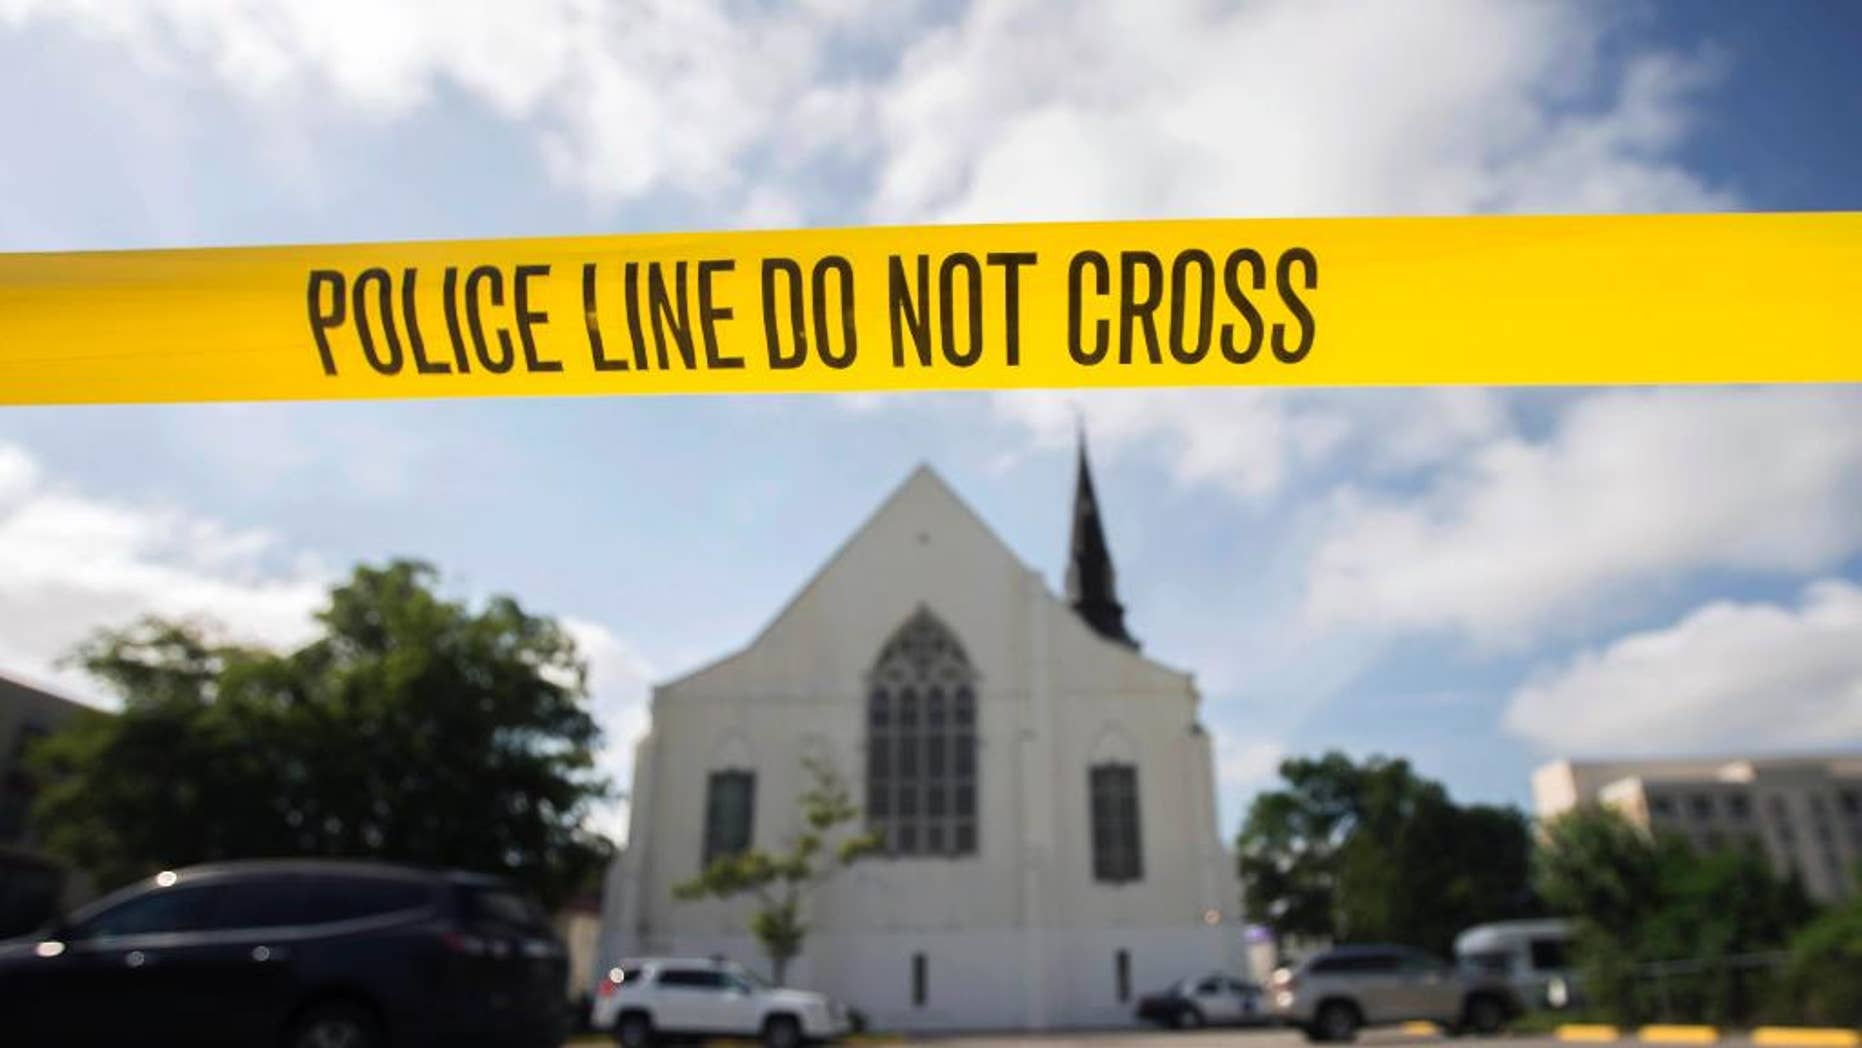 FILE - In this Friday, June 19, 2015 file photo, police tape surrounds the parking lot behind the AME Emanuel Church, a predominantly black church, as FBI forensic experts work at the crime scene where nine people where shot by white suspect Dylann Storm Roof, 21, on Wednesday in Charleston, S.C. The FBI collects extensive data on hate crimes each year, but nearly 2,800 local law enforcement agencies are not submitting the information, according to an investigation of 2009-2014 data by The Associated Press. Thousands more file reports with the FBI only sporadically. (AP Photo/Stephen B. Morton, File)